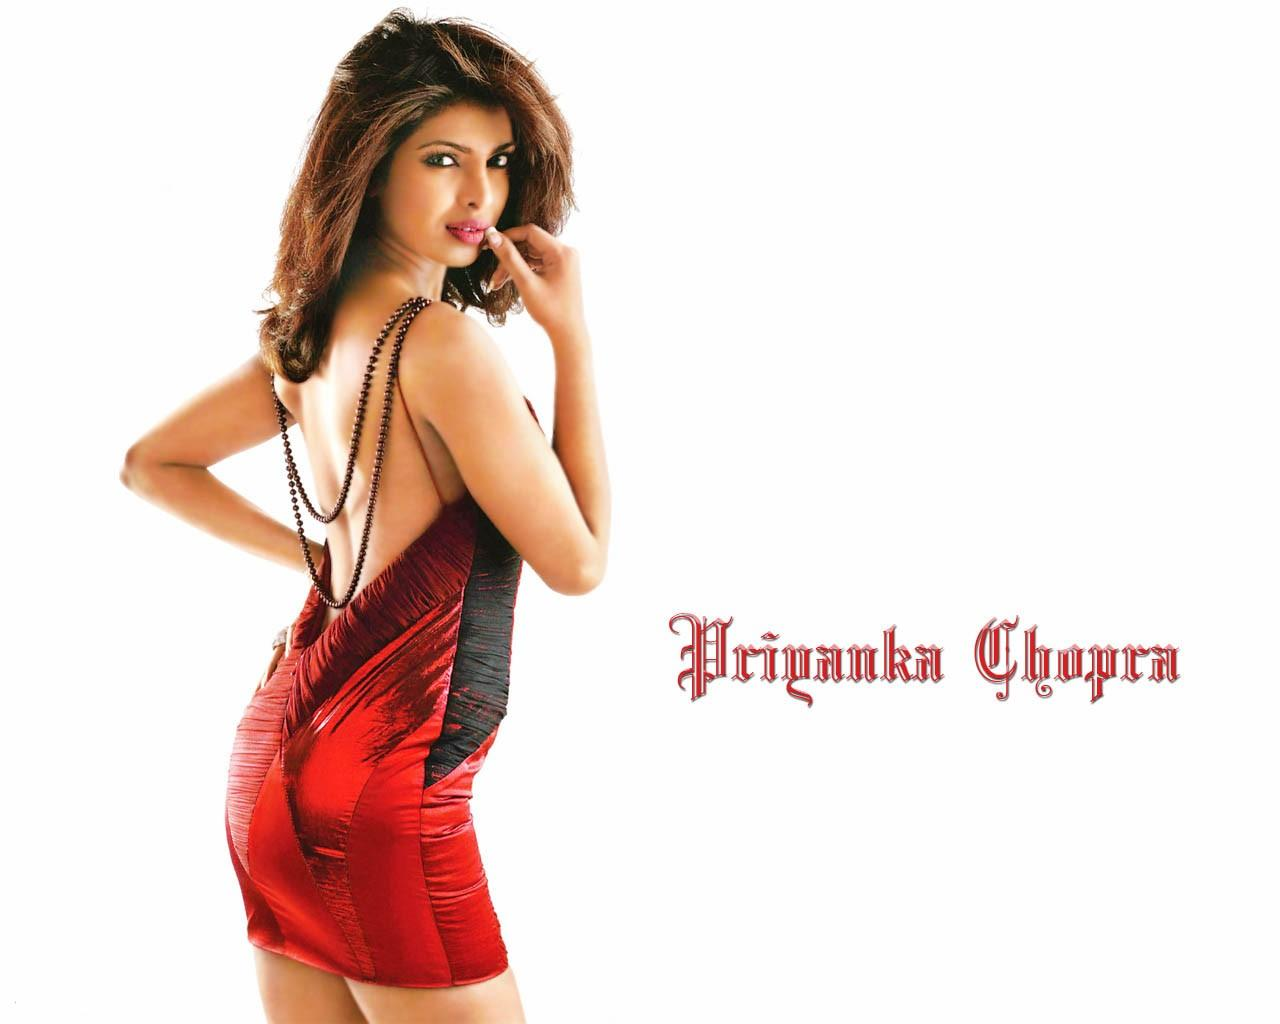 http://1.bp.blogspot.com/-RR9Rc5dYNqQ/TuOVUujtcWI/AAAAAAAAC_w/3YQ4tMOuGQI/s1600/Don2_Priyanka_chopra_wallpapers_beautiful_babe.jpg